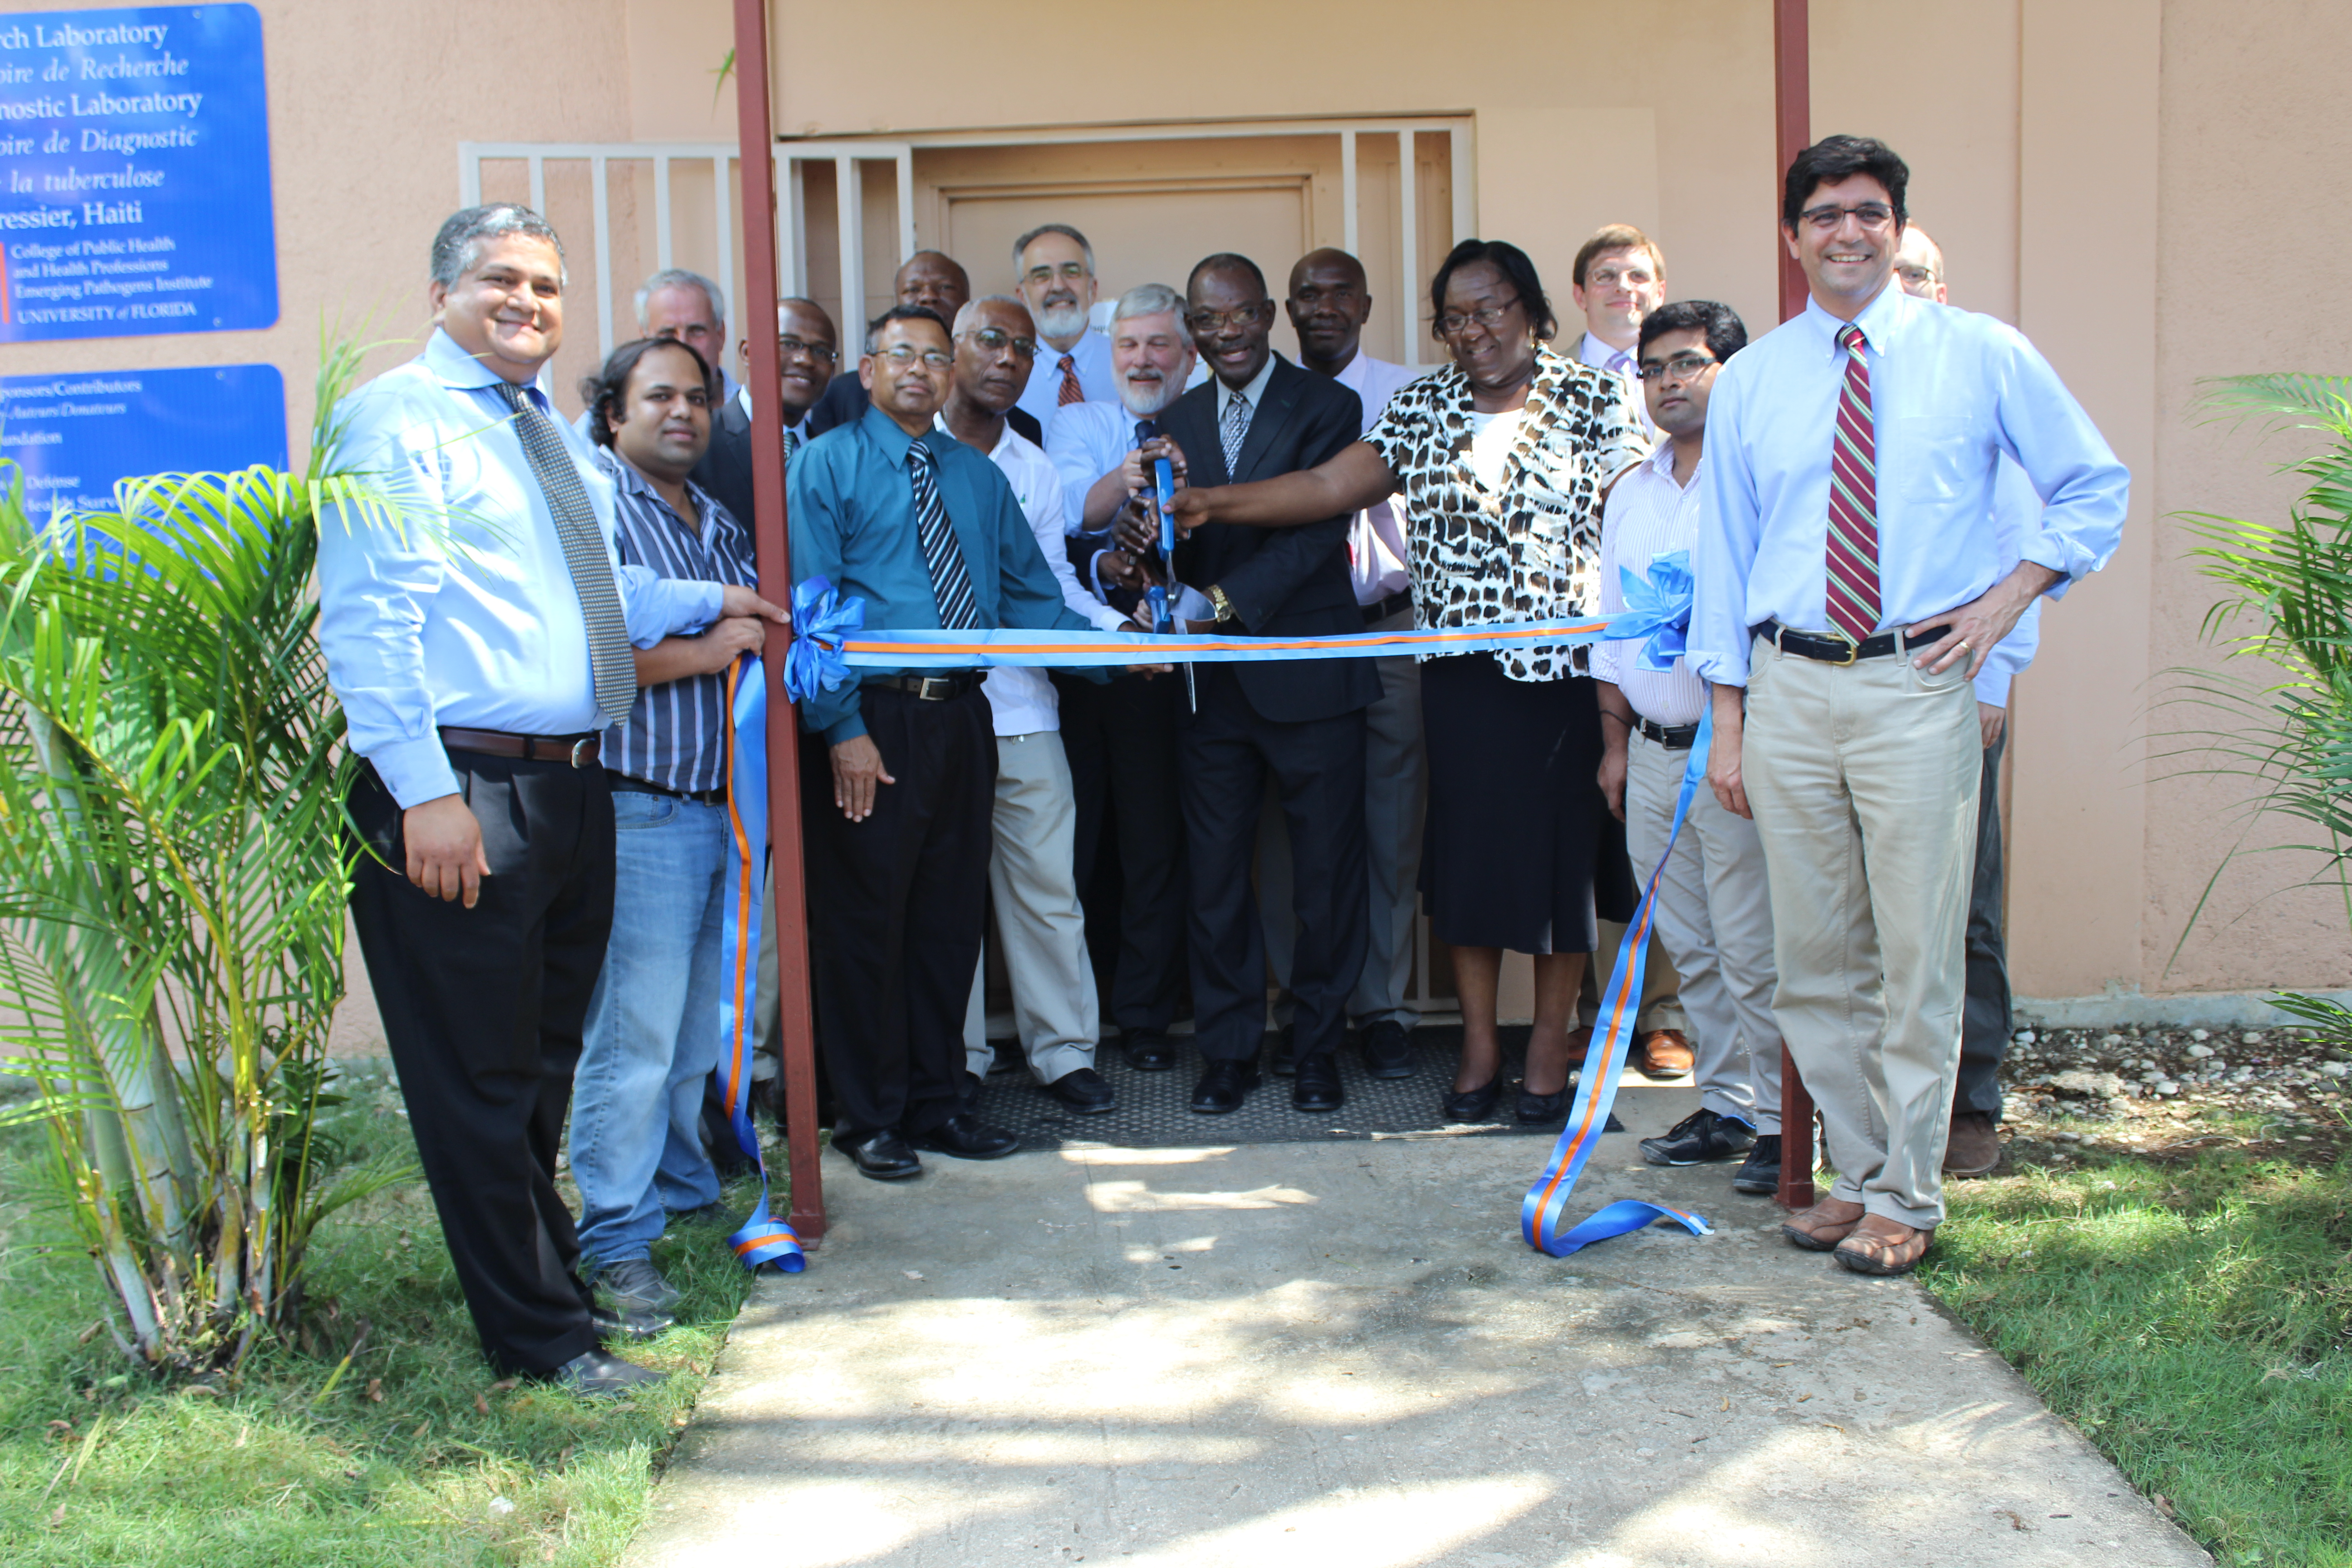 Haiti Biosafety Lab Grand Opening  U00bb Division Of Infectious